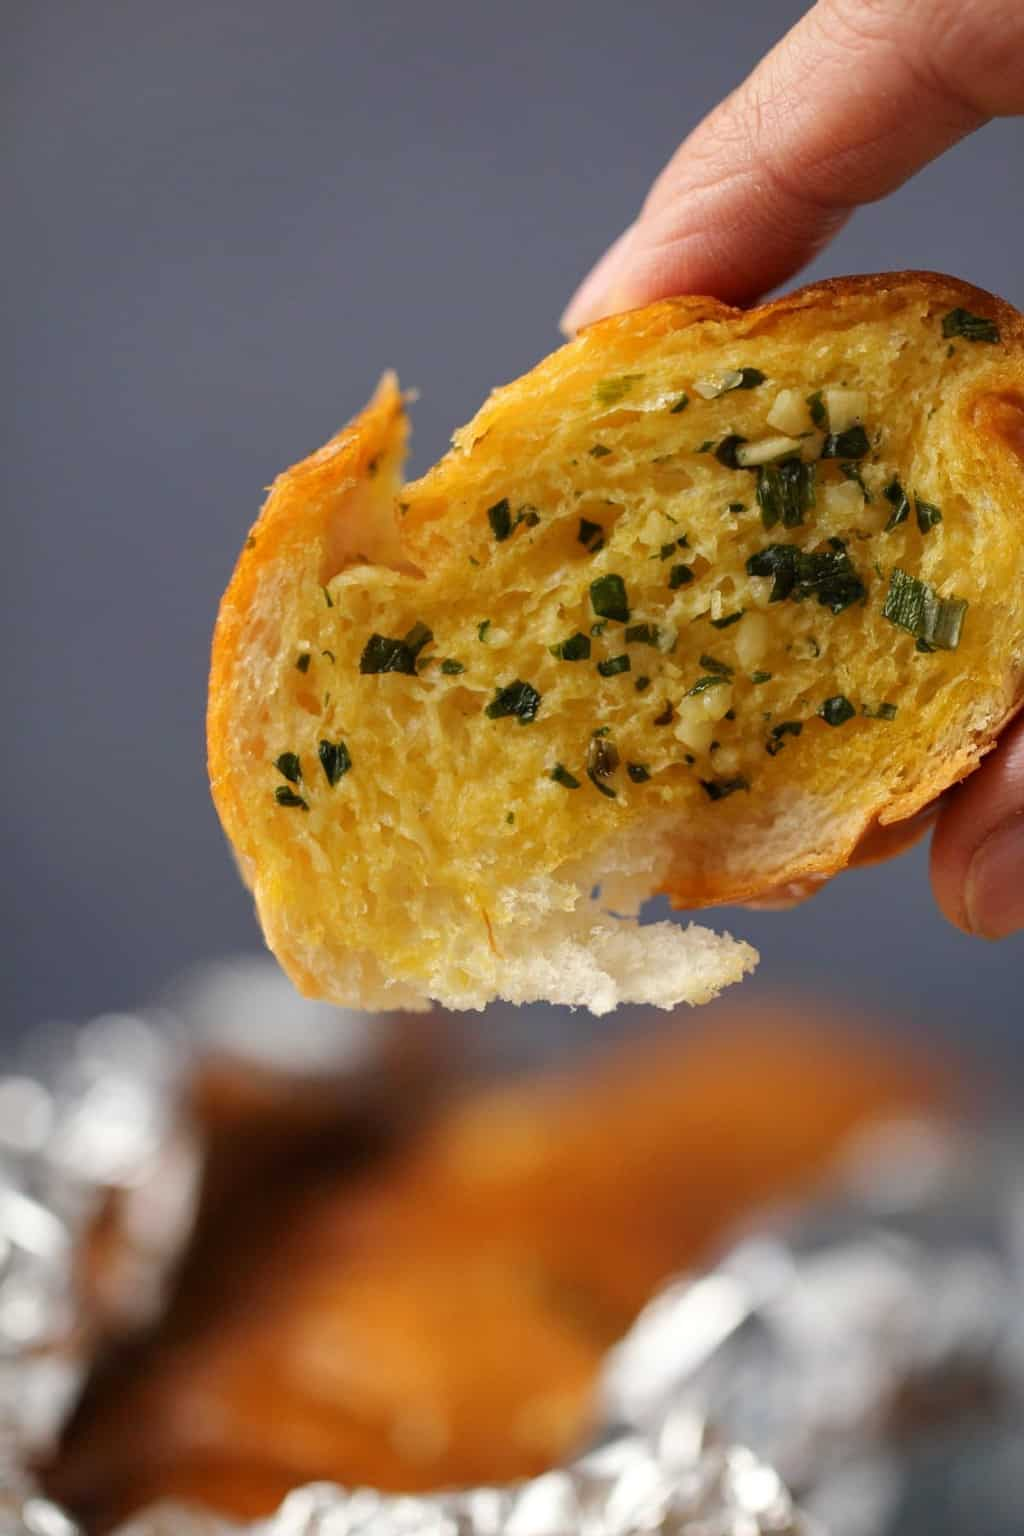 A slice of vegan garlic bread.